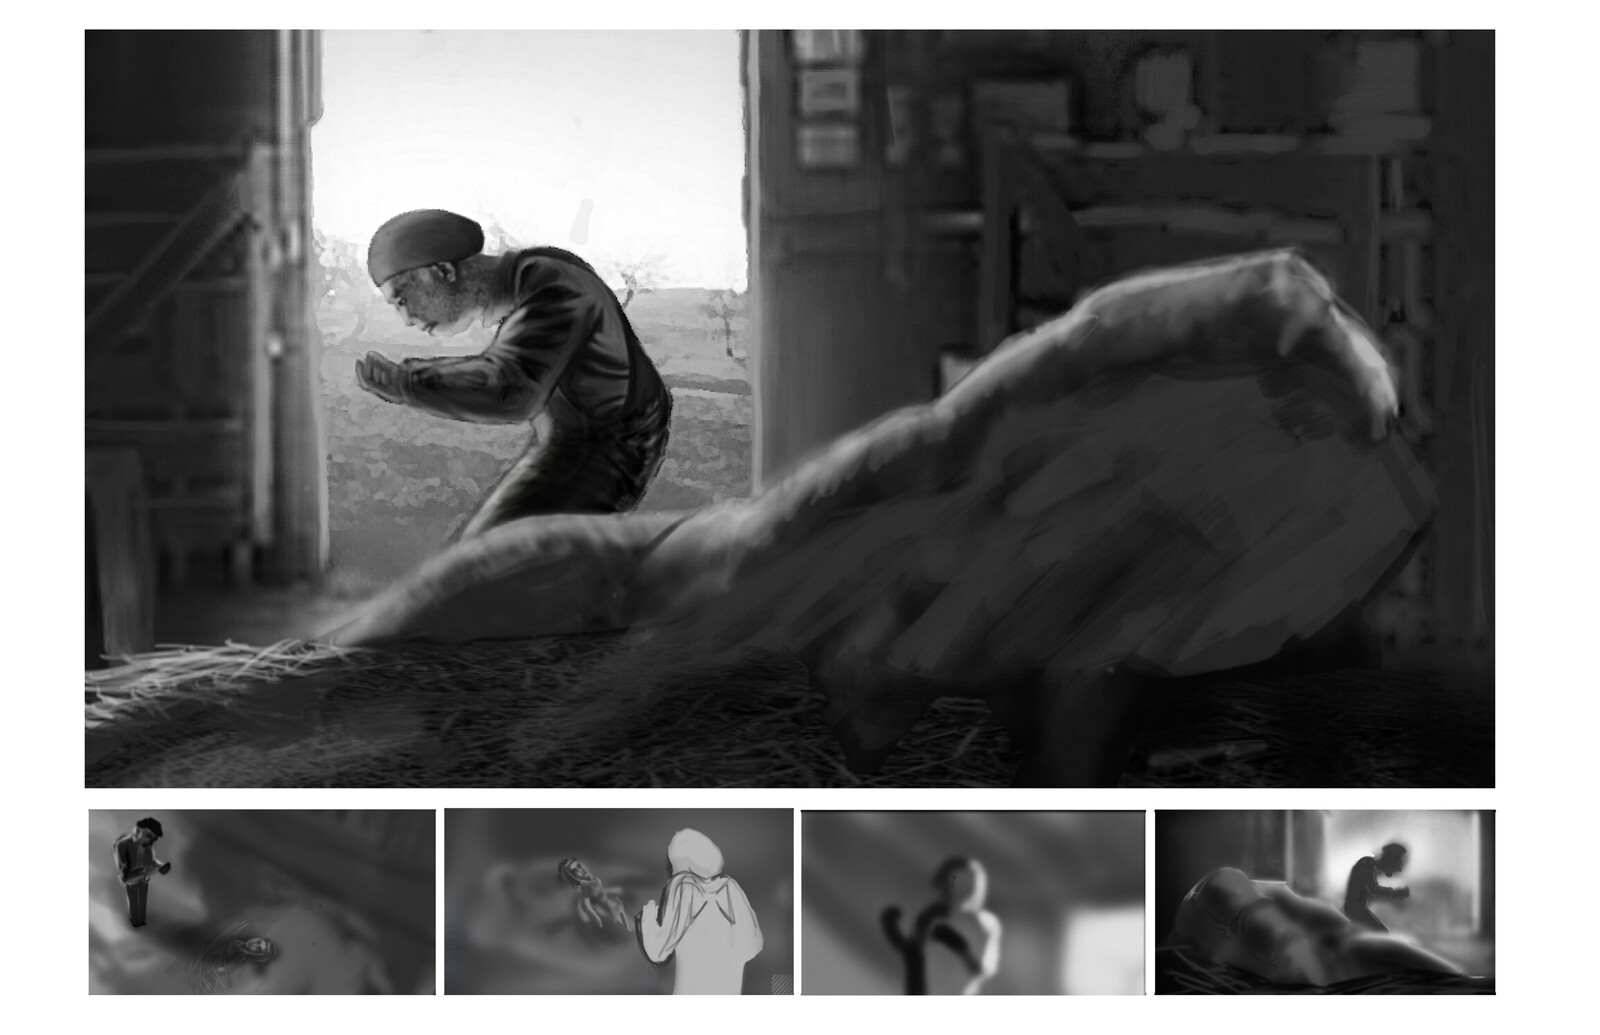 Of Mice and Men Concept Work